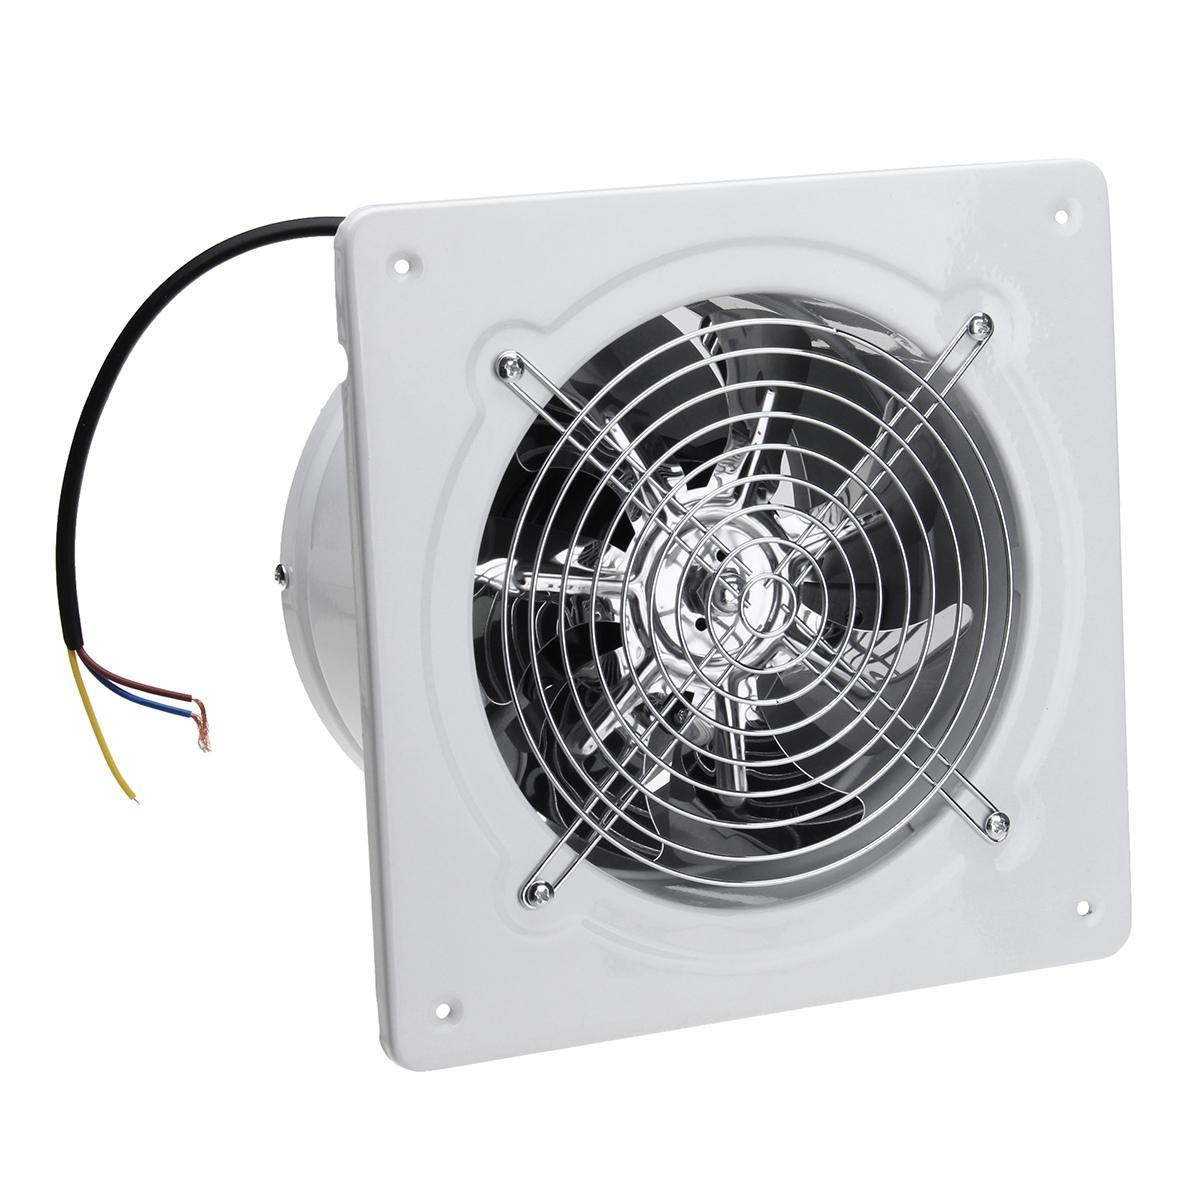 4 inch 20w 220v high speed exhaust fan toilet kitchen bathroom hanging wall window glass small ventilator extractor exhaust fans